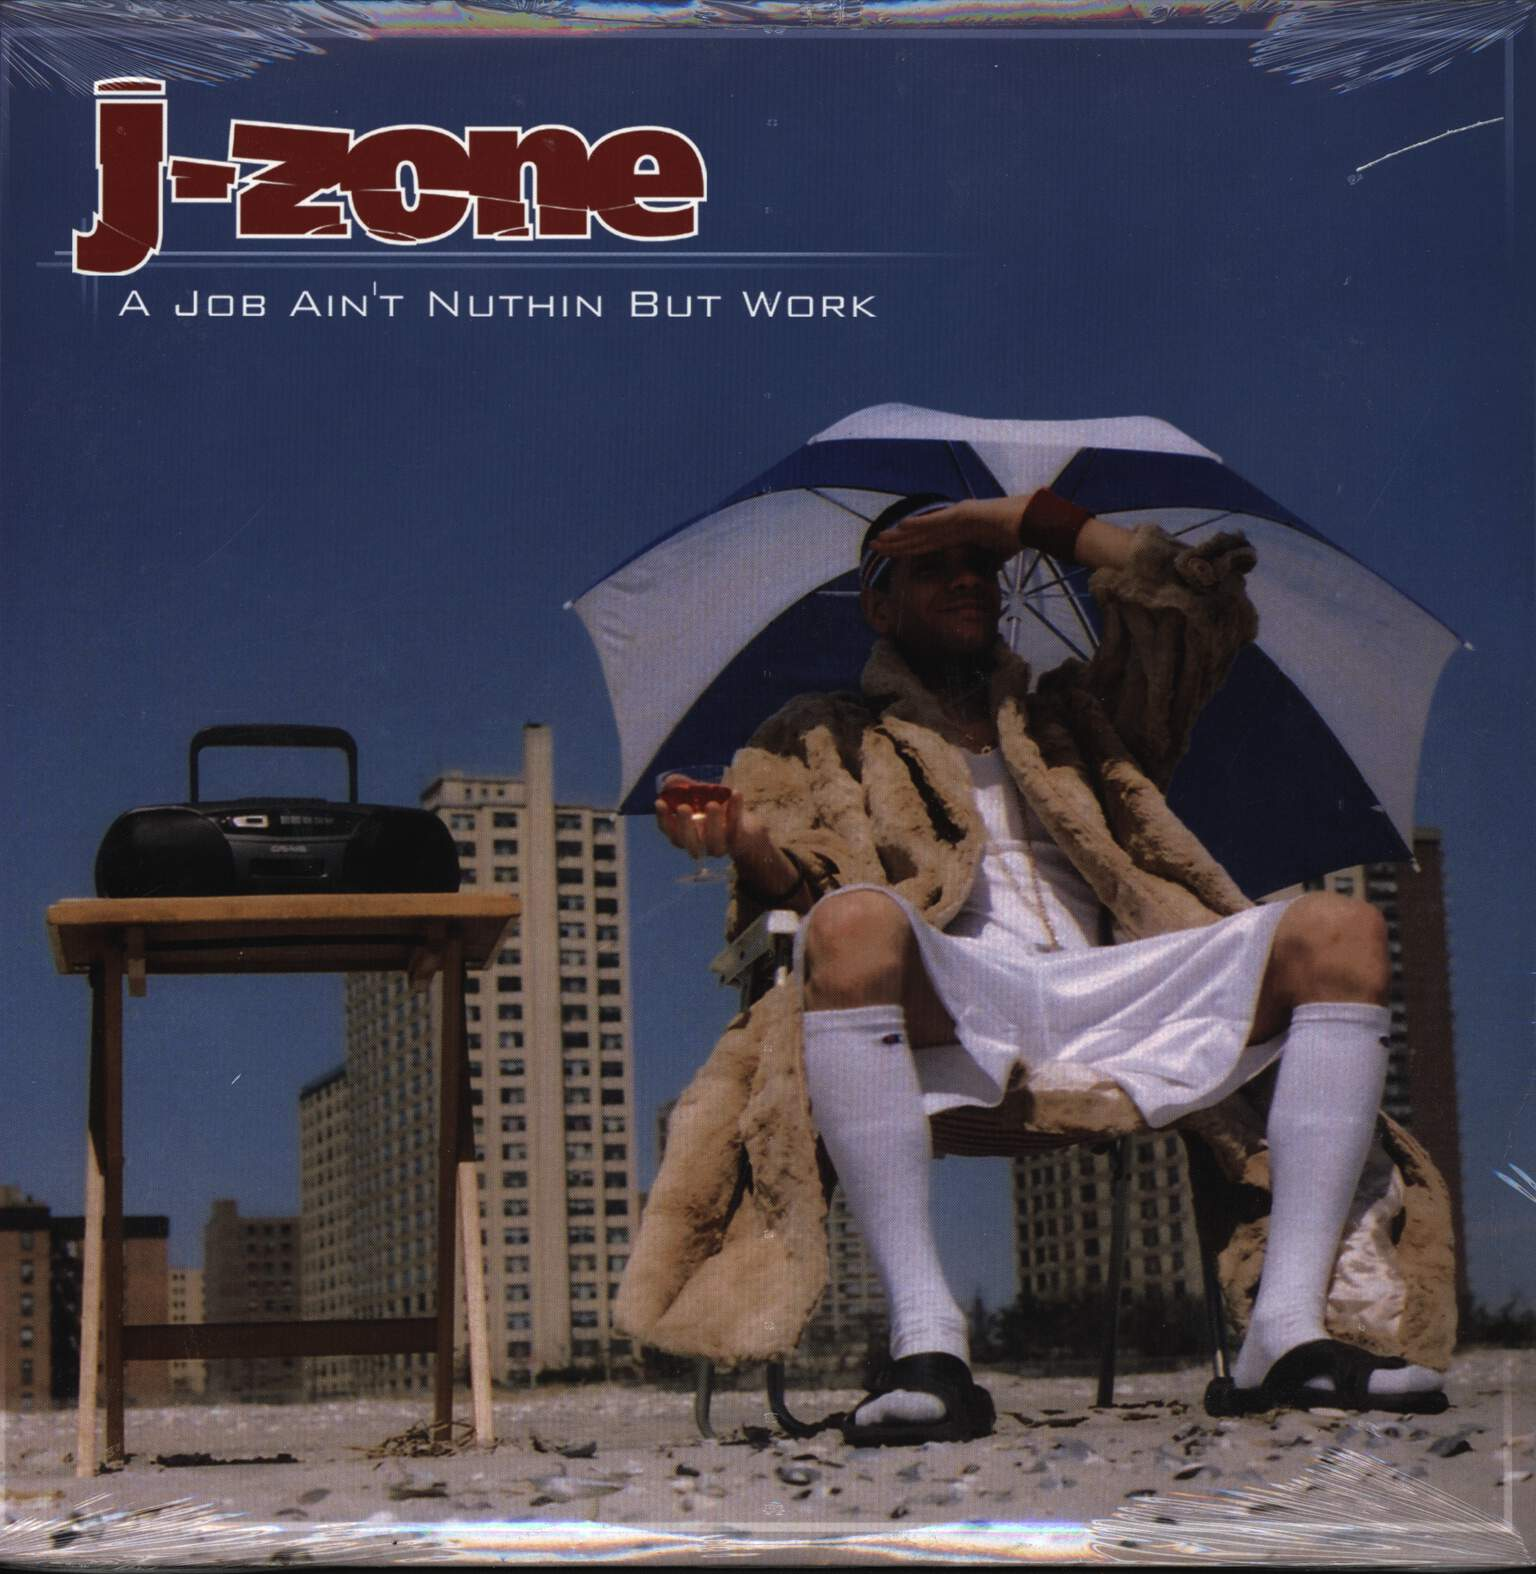 "J-Zone: A Job Ain't Nuthin But Work, 12"" Maxi Single (Vinyl)"